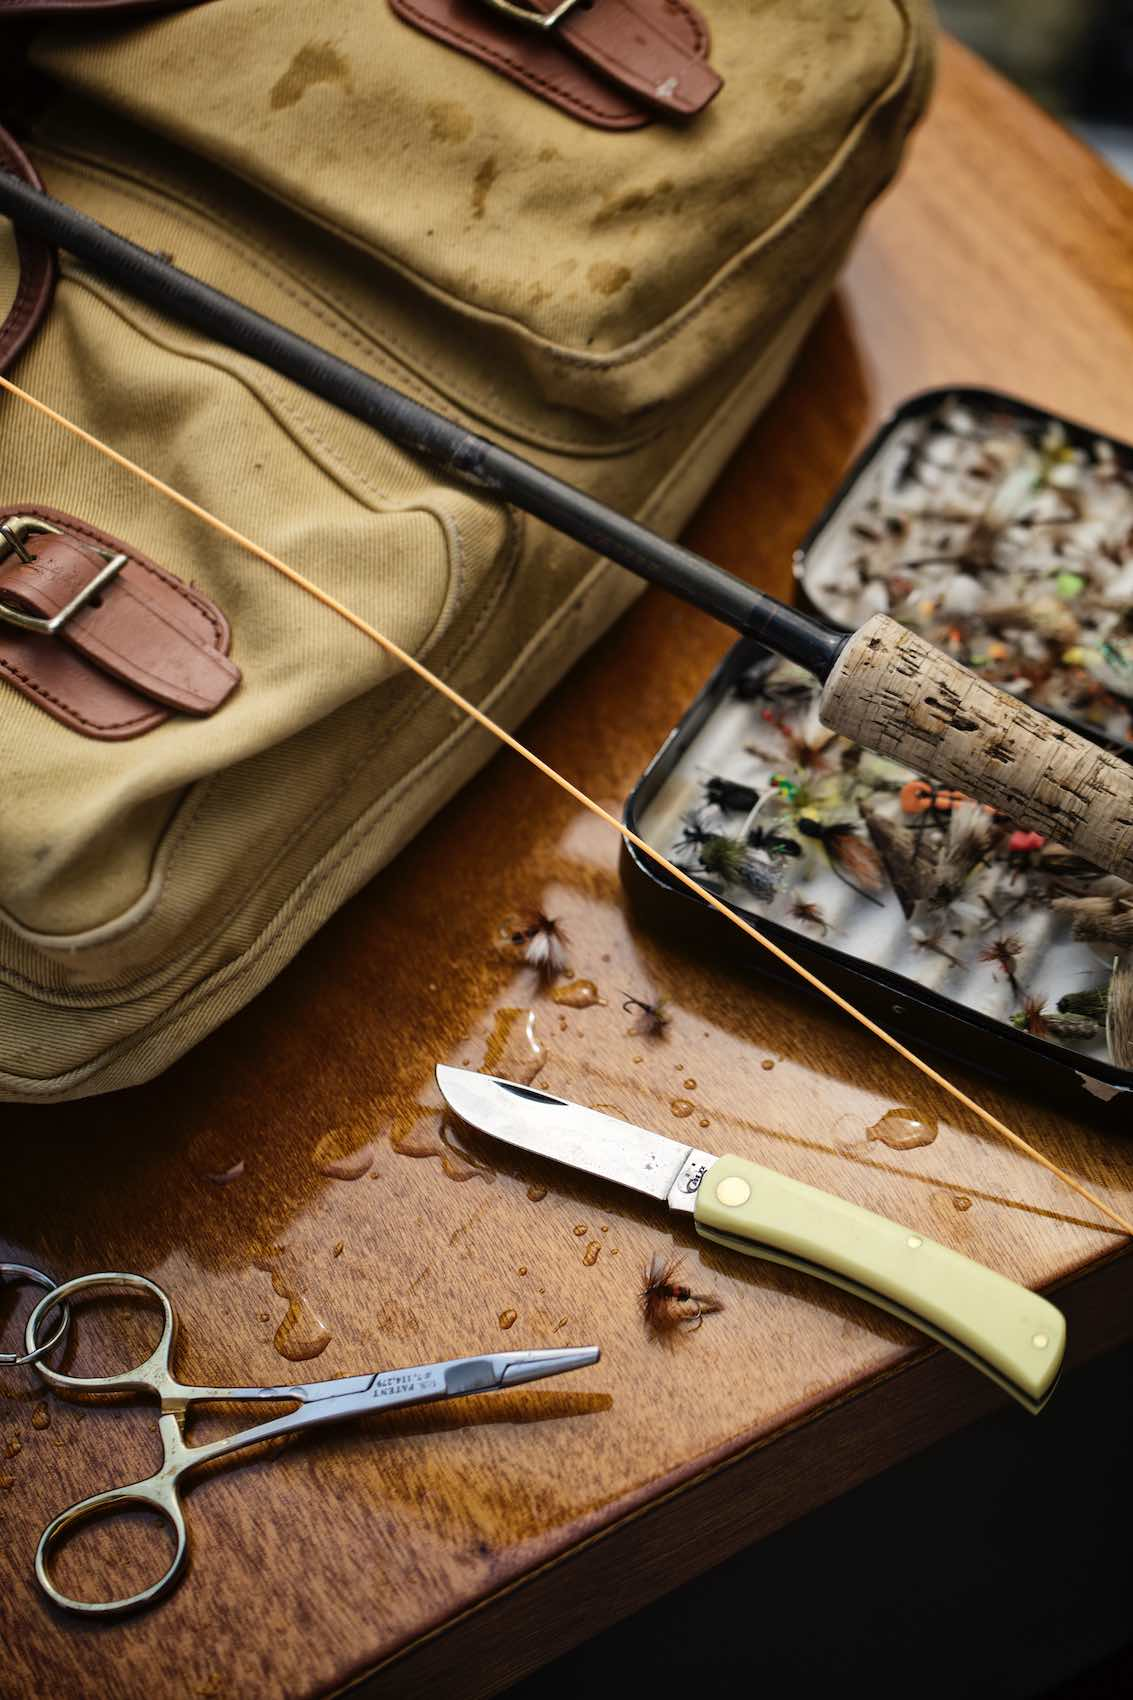 Jody Horton Photography - Fishing gear and pocket knife shot for Case Knives.